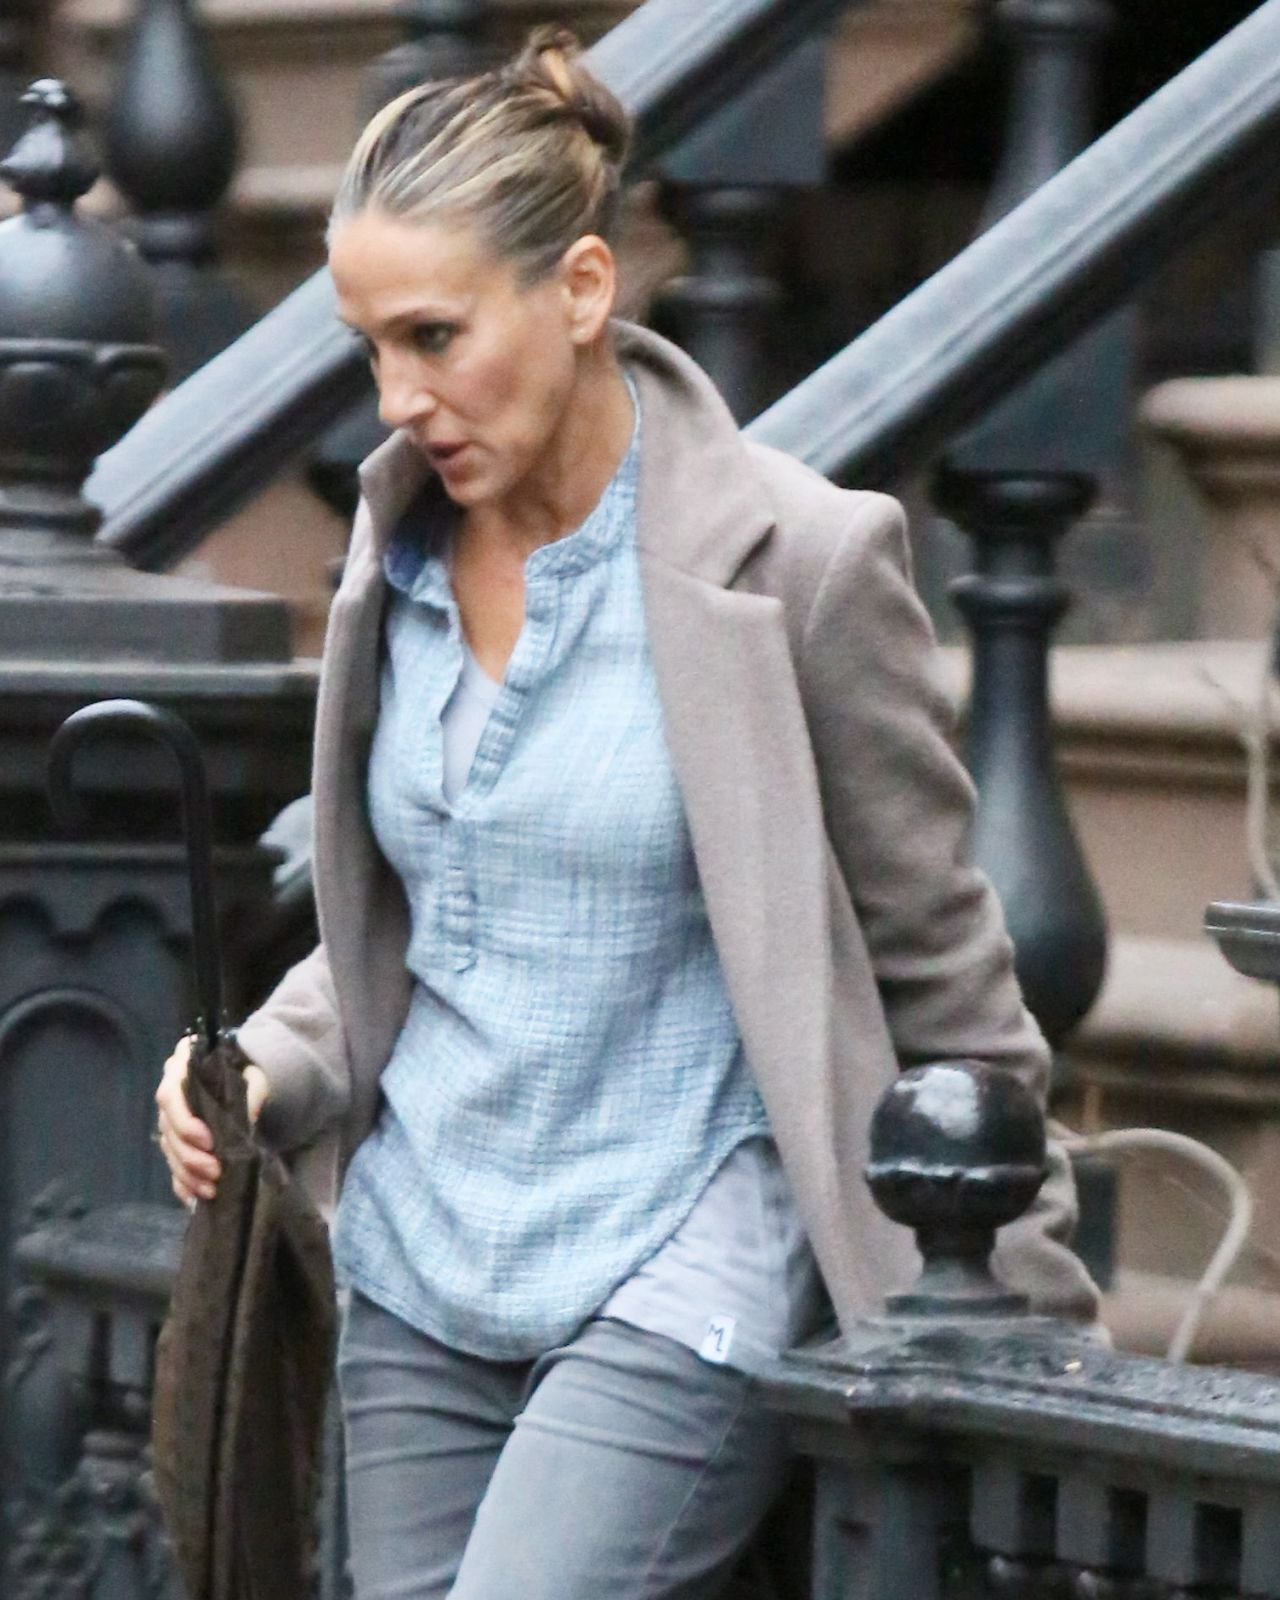 sarah jessica parker street style out in new york city